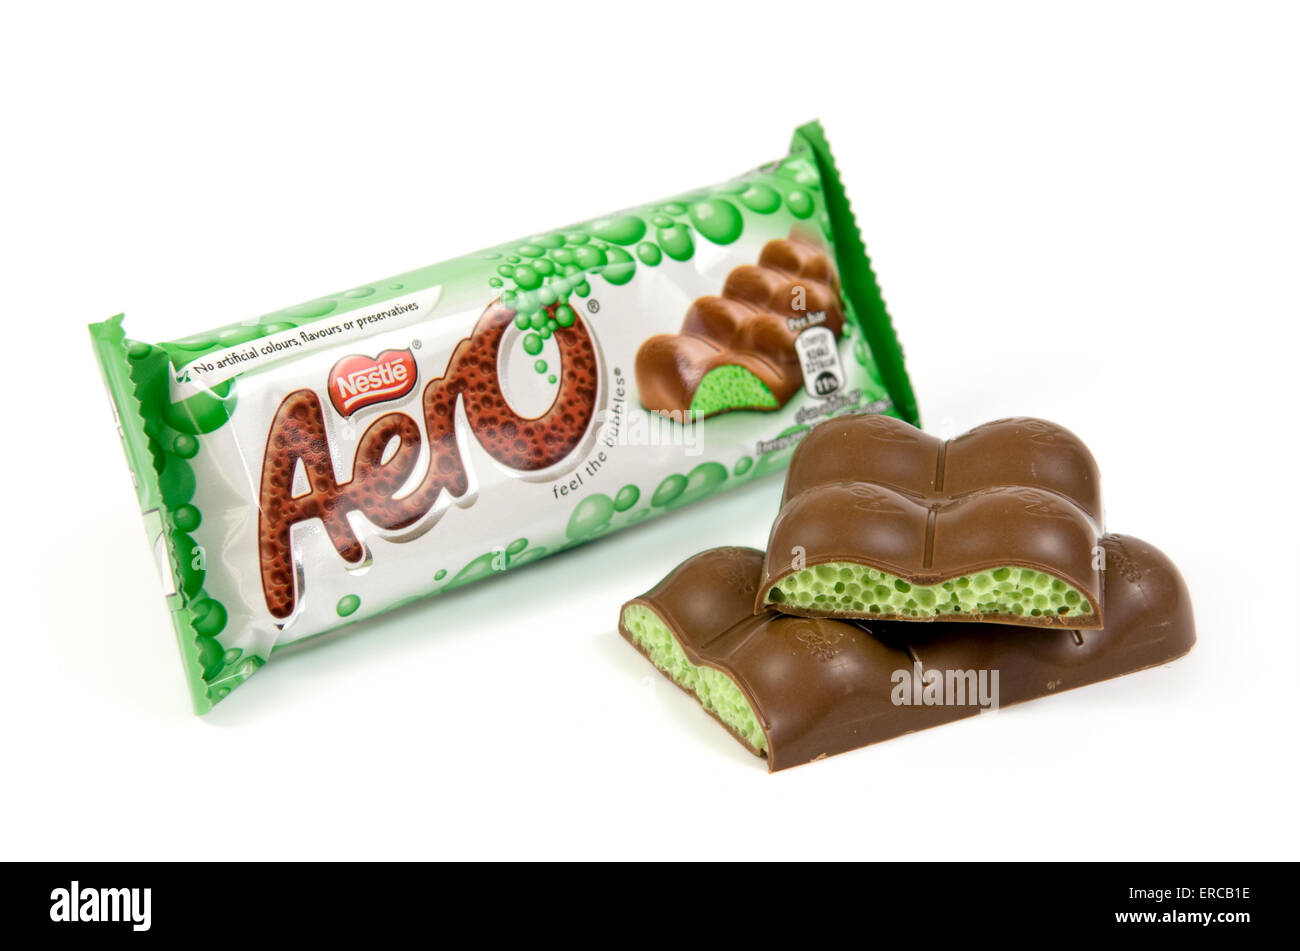 Peppermint aero chocolate bar on white background with open cut up bar by the side - Stock Image